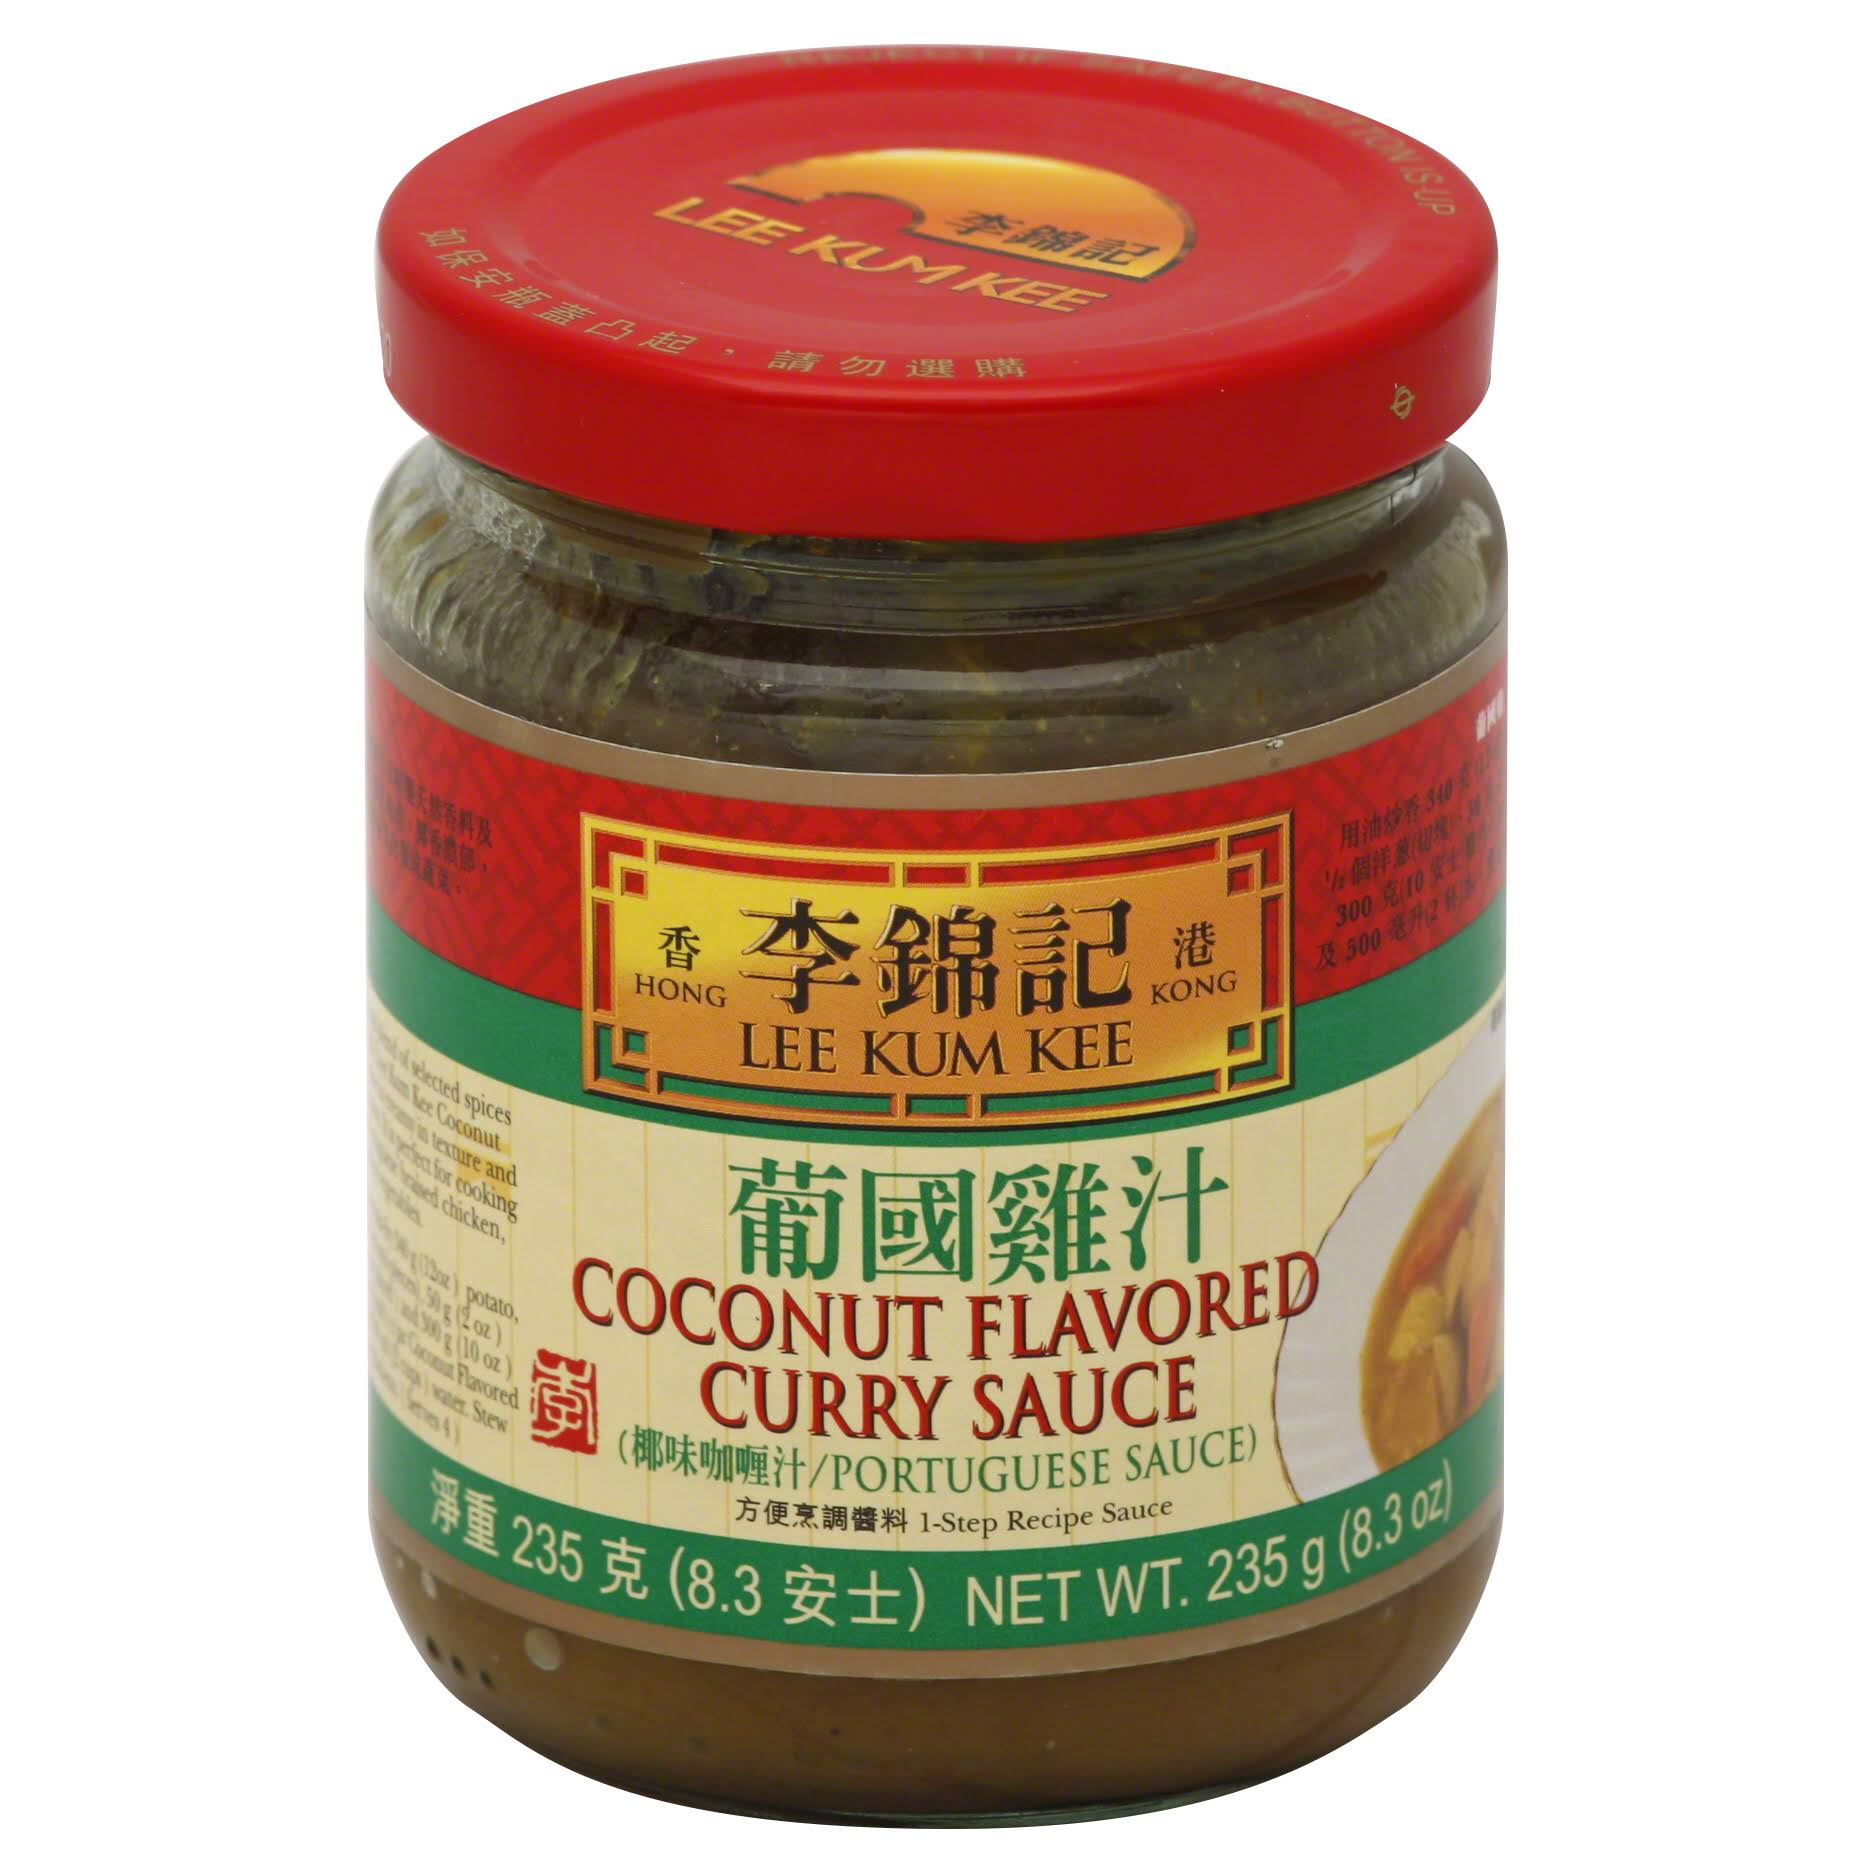 Lee Kum Kee Curry Sauce, Coconut Flavored - 8.3 oz